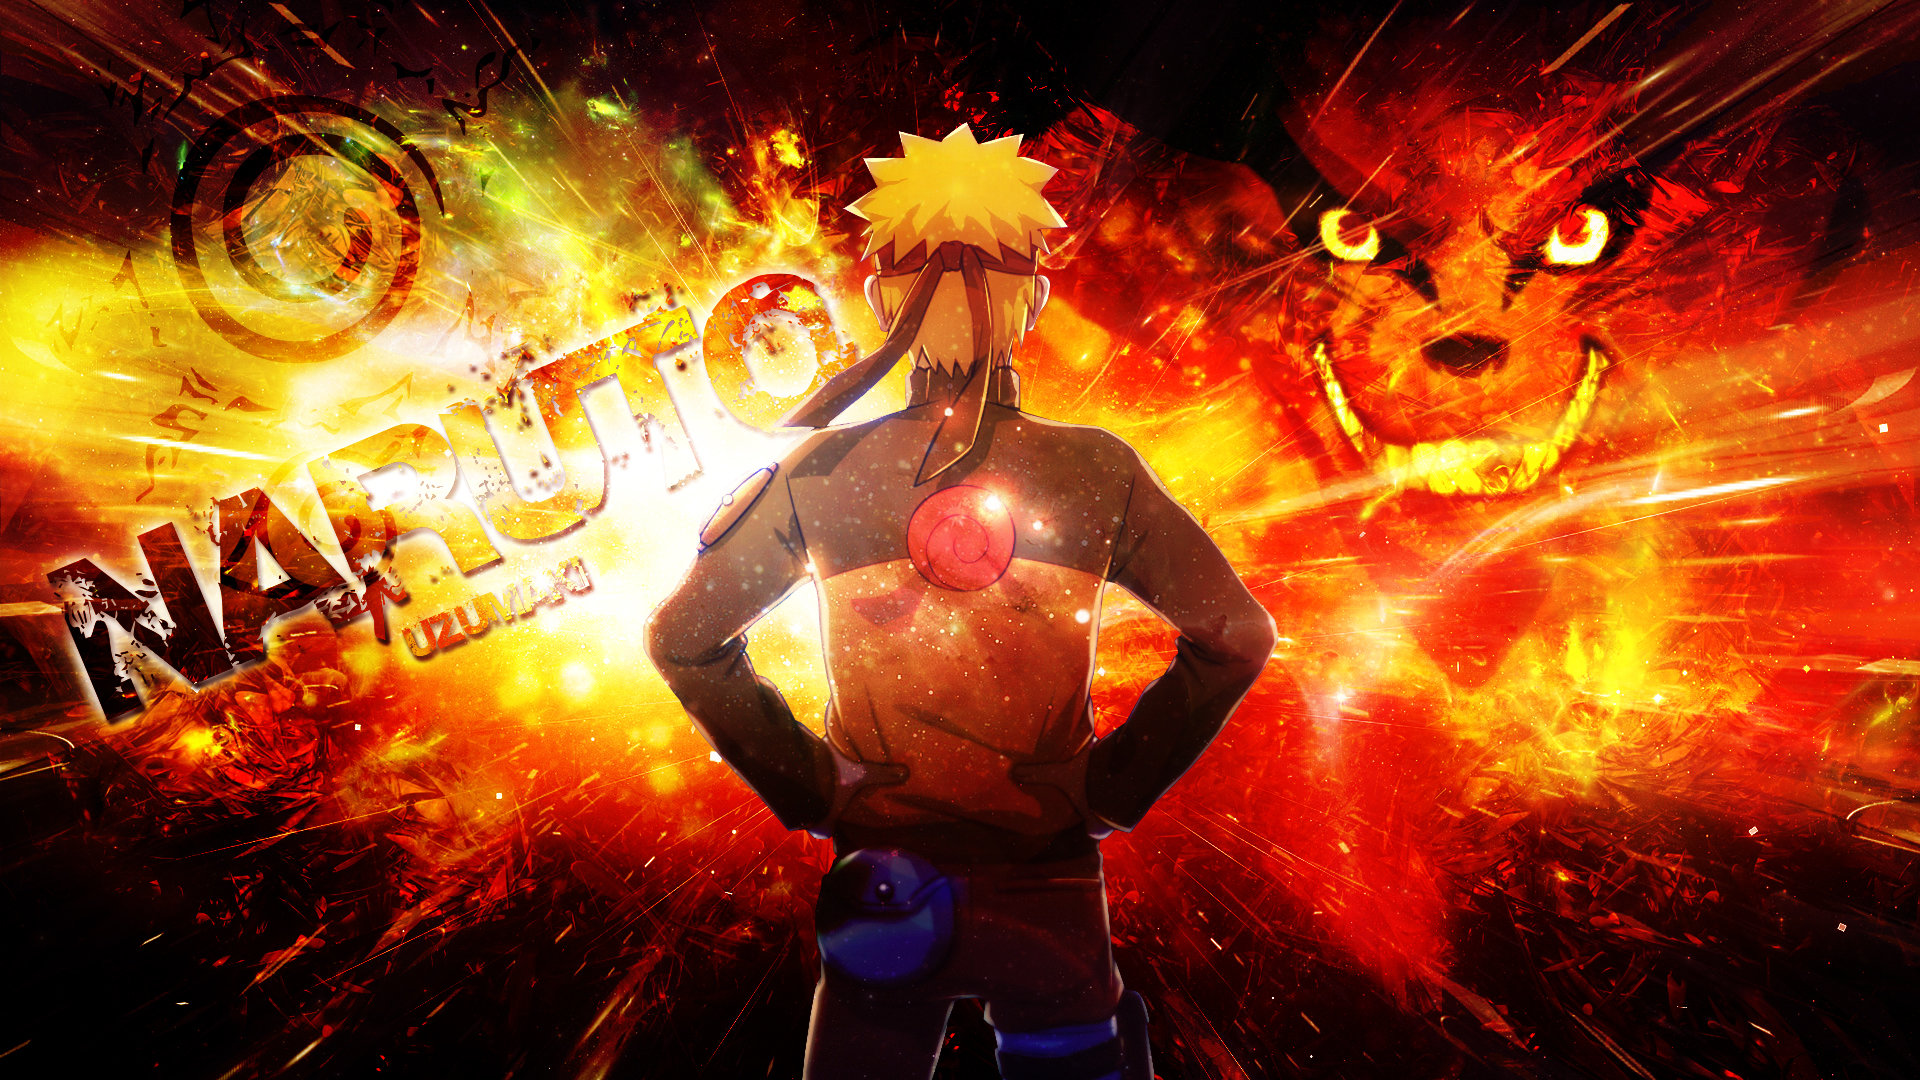 Free download Naruto wallpaper ID:395496 1080p for computer